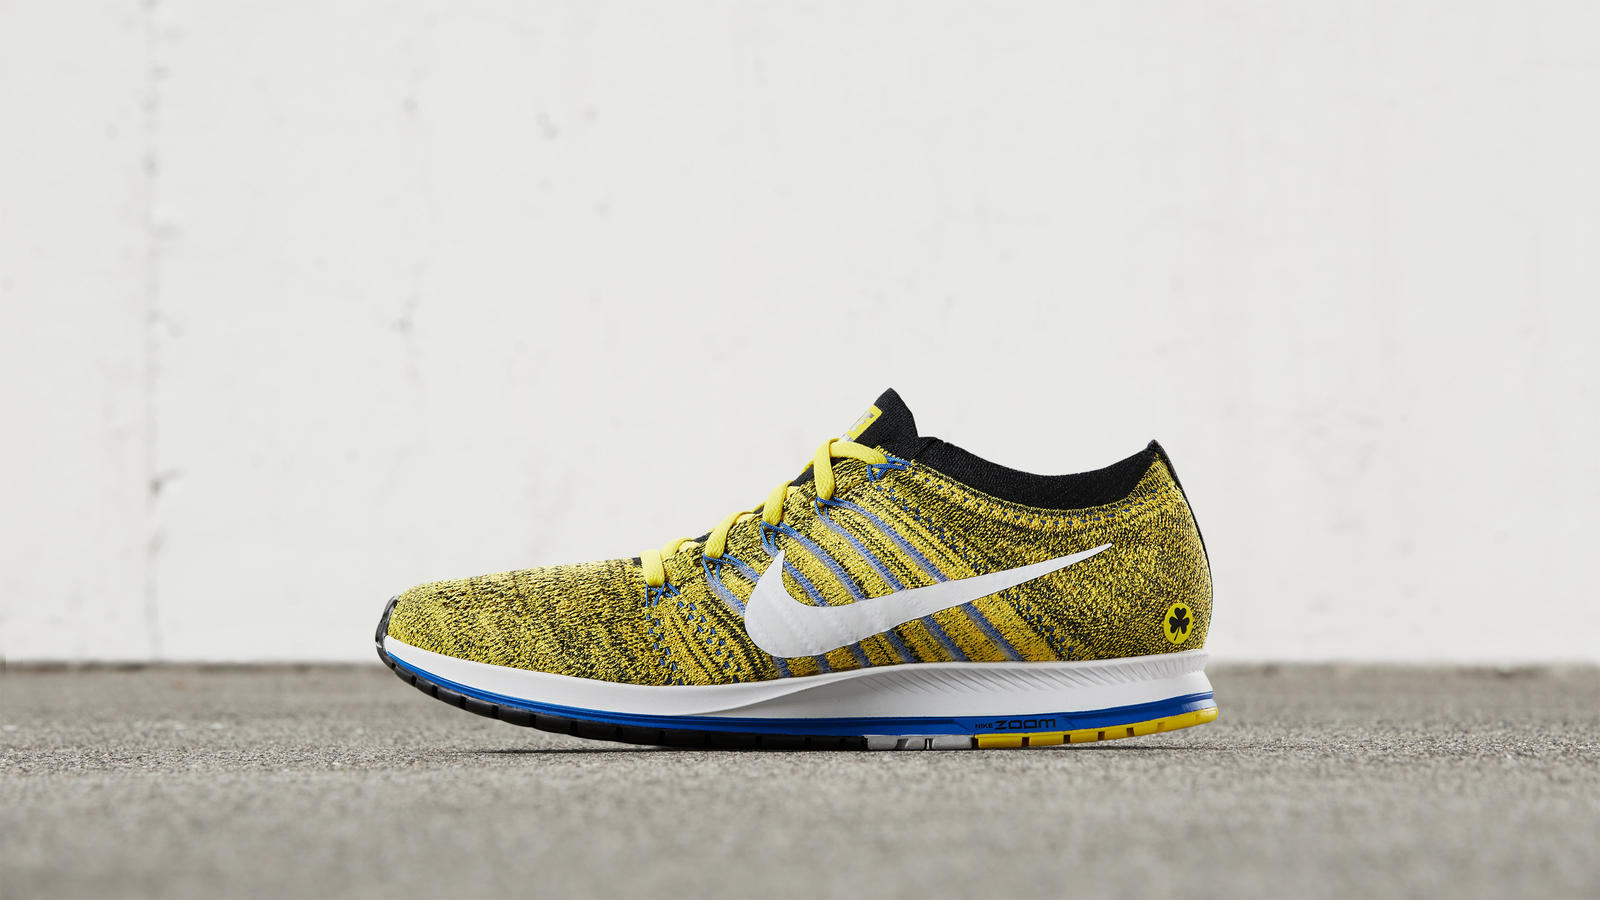 cda3454bee9d6 Nike Zoom Flyknit Streak (Boston) - Nike News